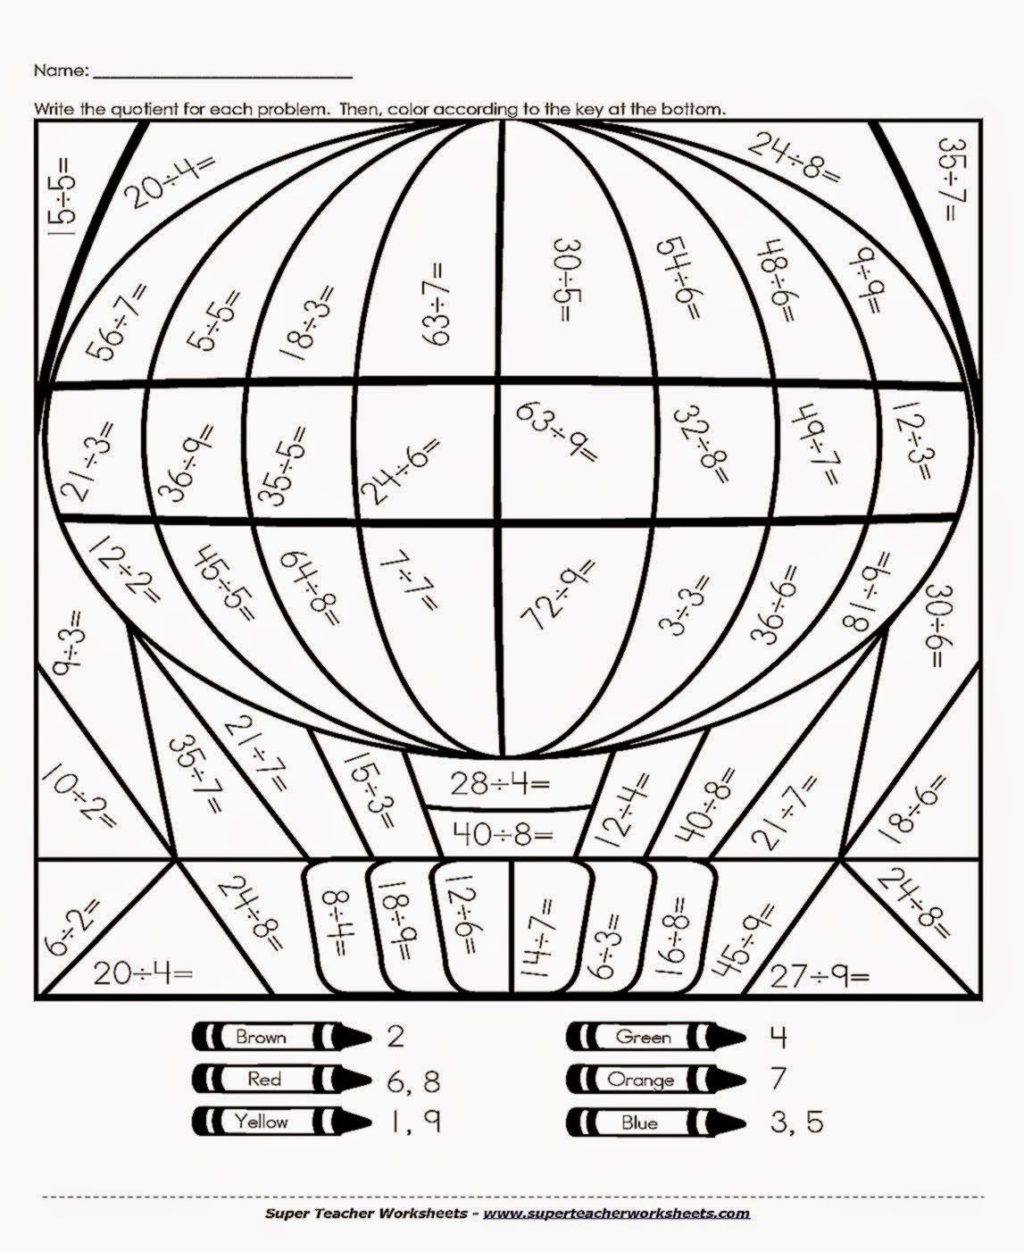 Middle School Math Puzzles Printable Worksheet Math Coloring Puzzles Fabulous Picture